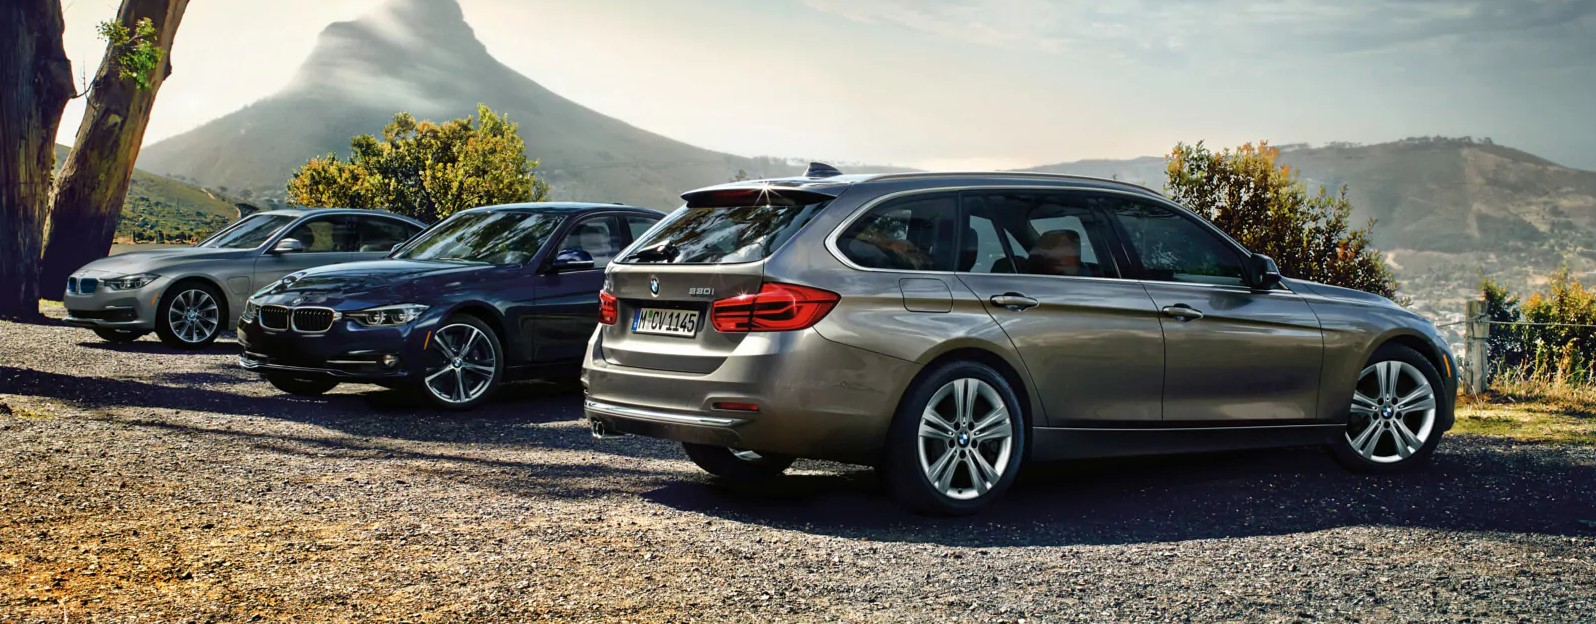 2019 BMW 3 Series Rear Exterior